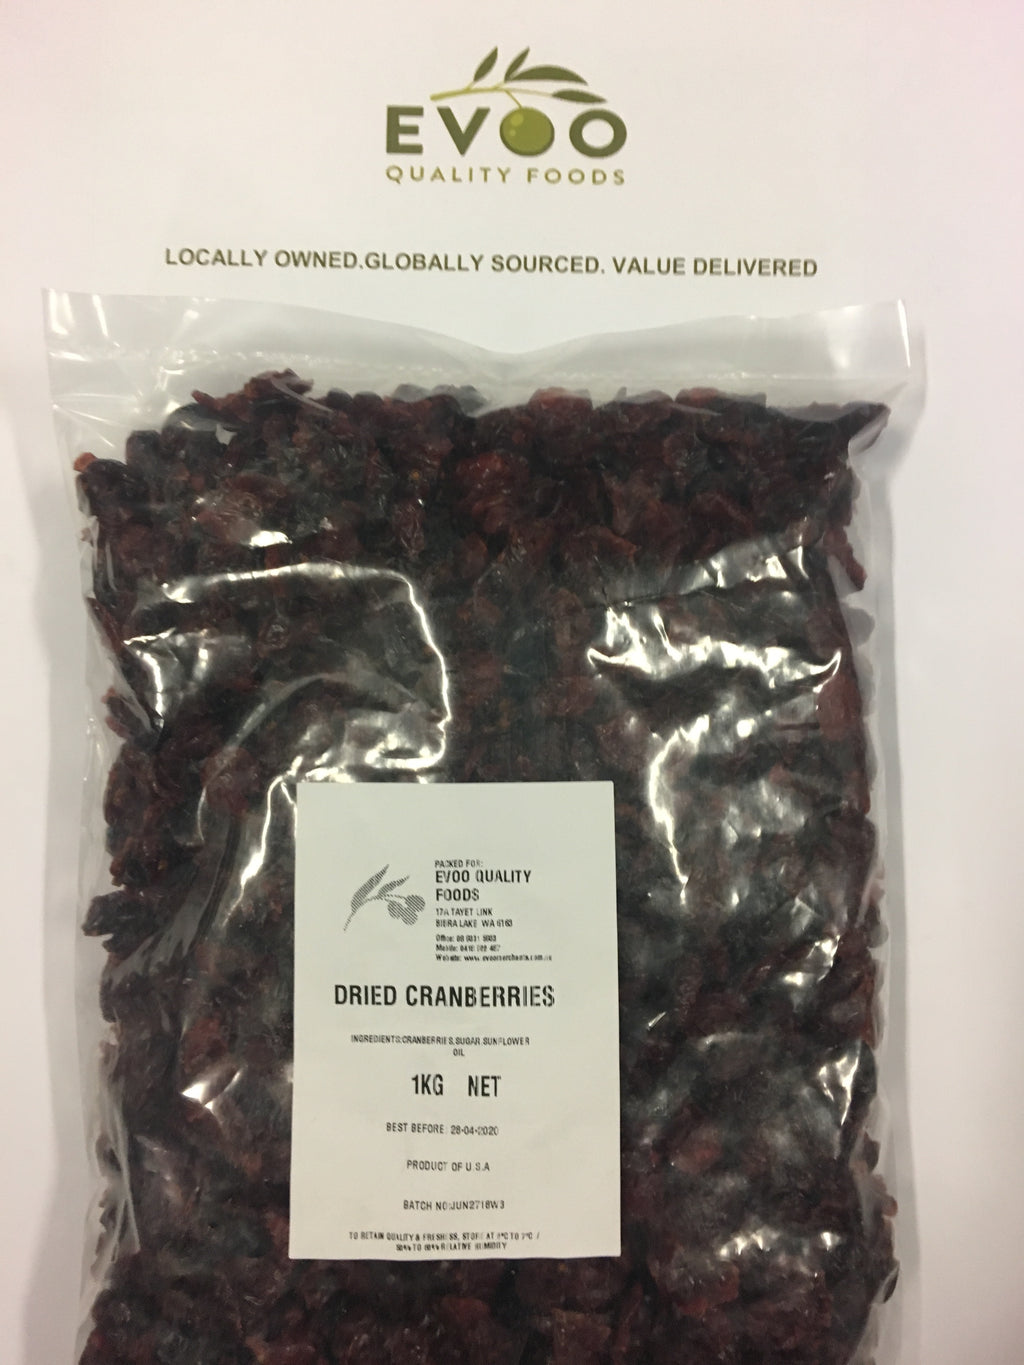 Cranberries Dried 1kg Bag EVOO QF